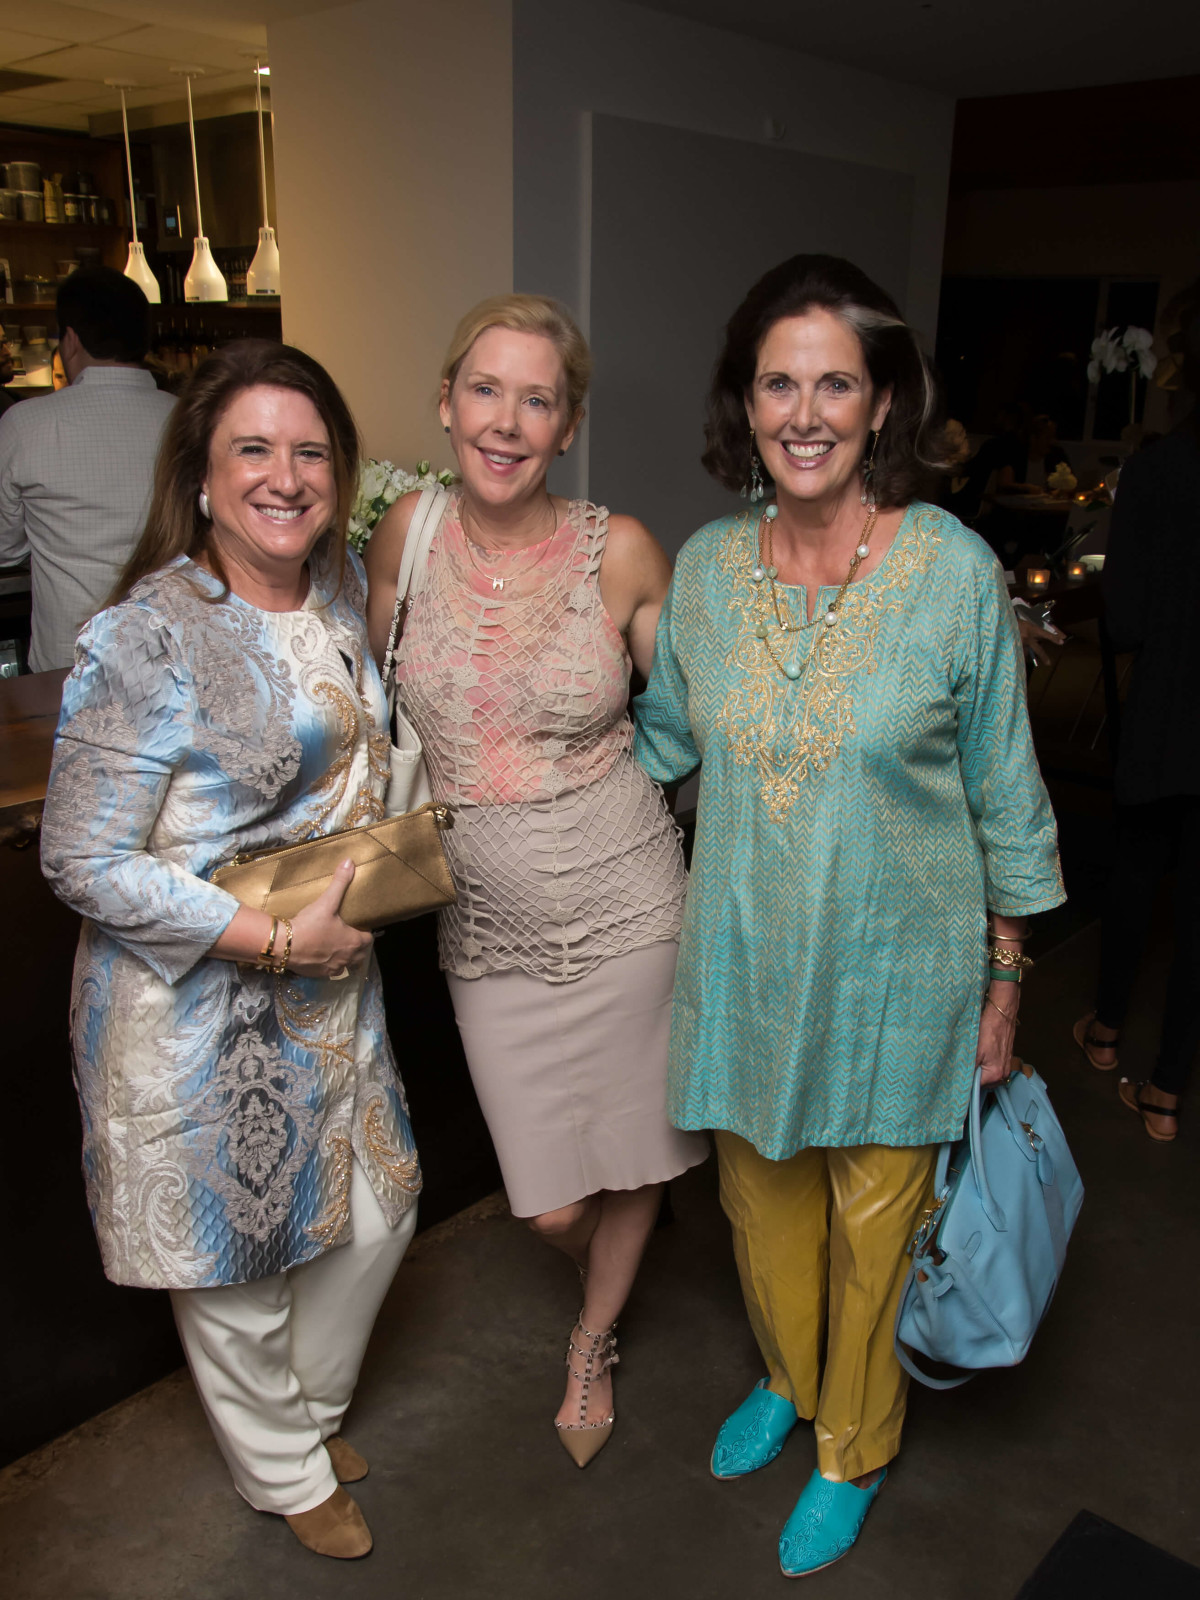 PaperCity launch party, 9/16, Deborah Colton, Laura Rathe, Christina Girard